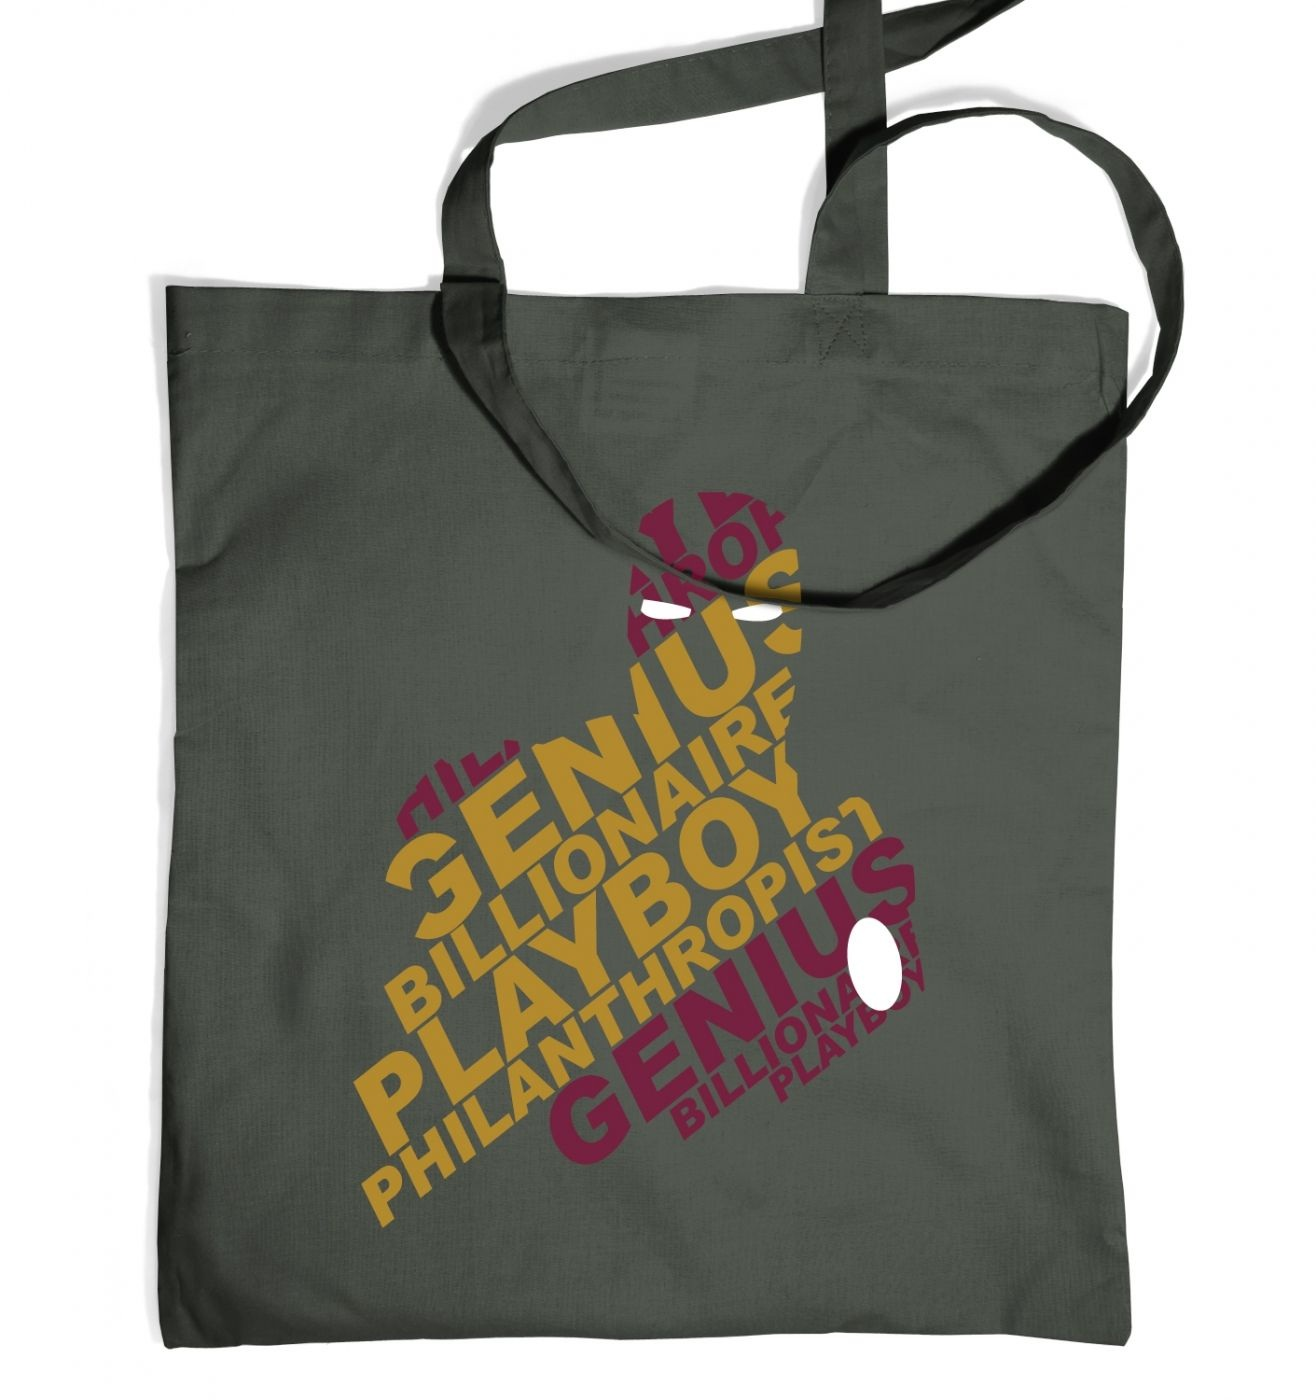 Genius Billionaire tote bag